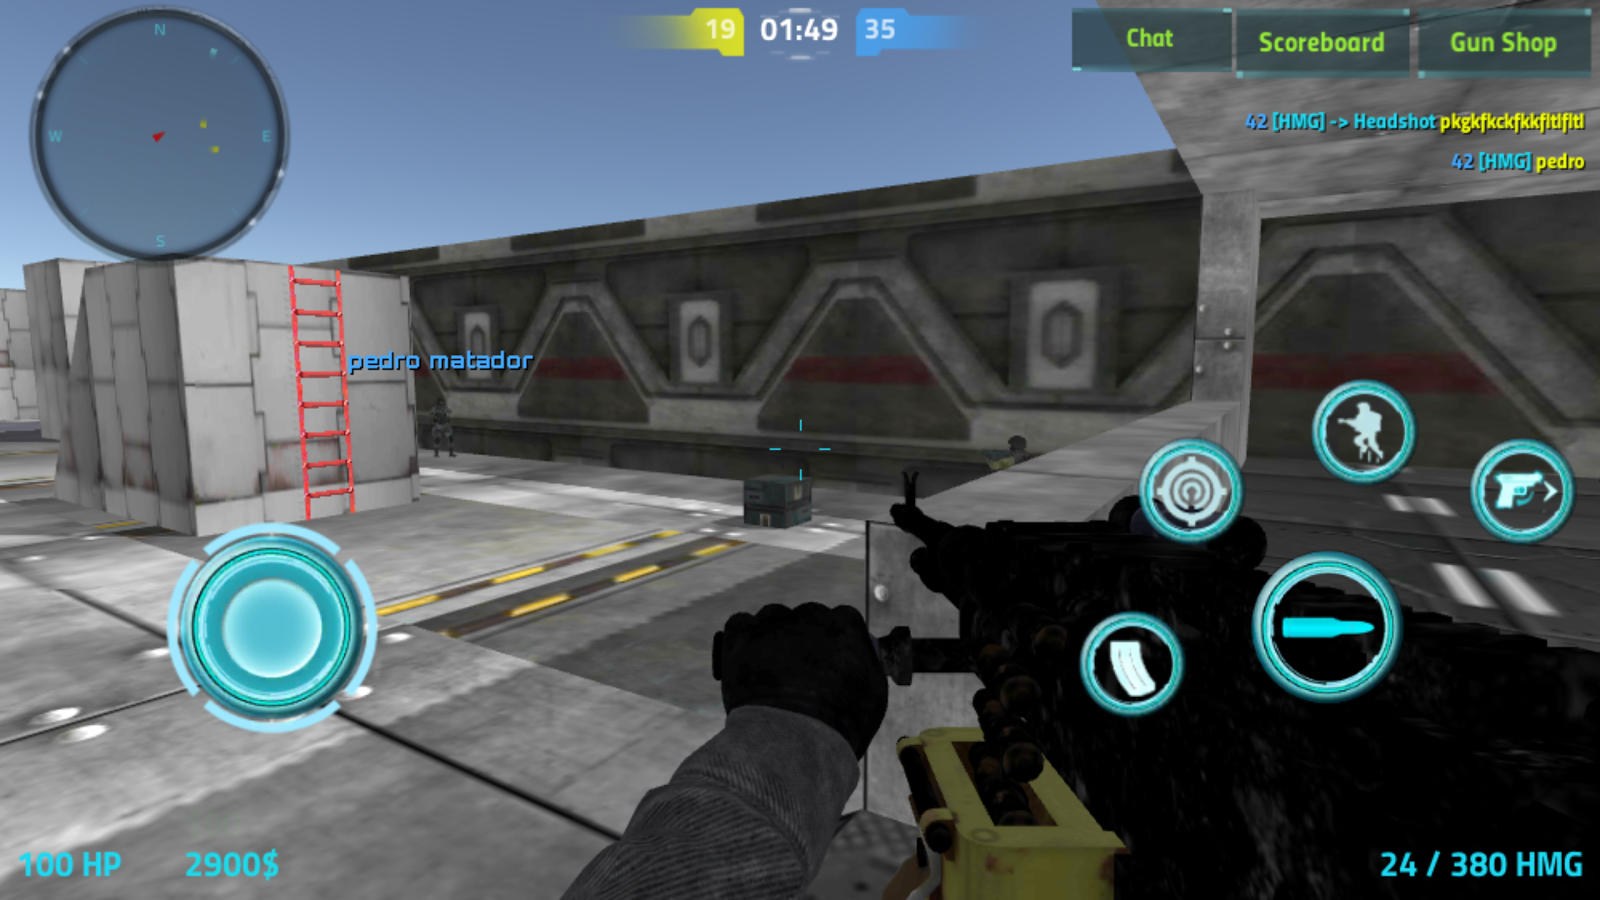 Real Counter Strike - Online FPS- screenshot